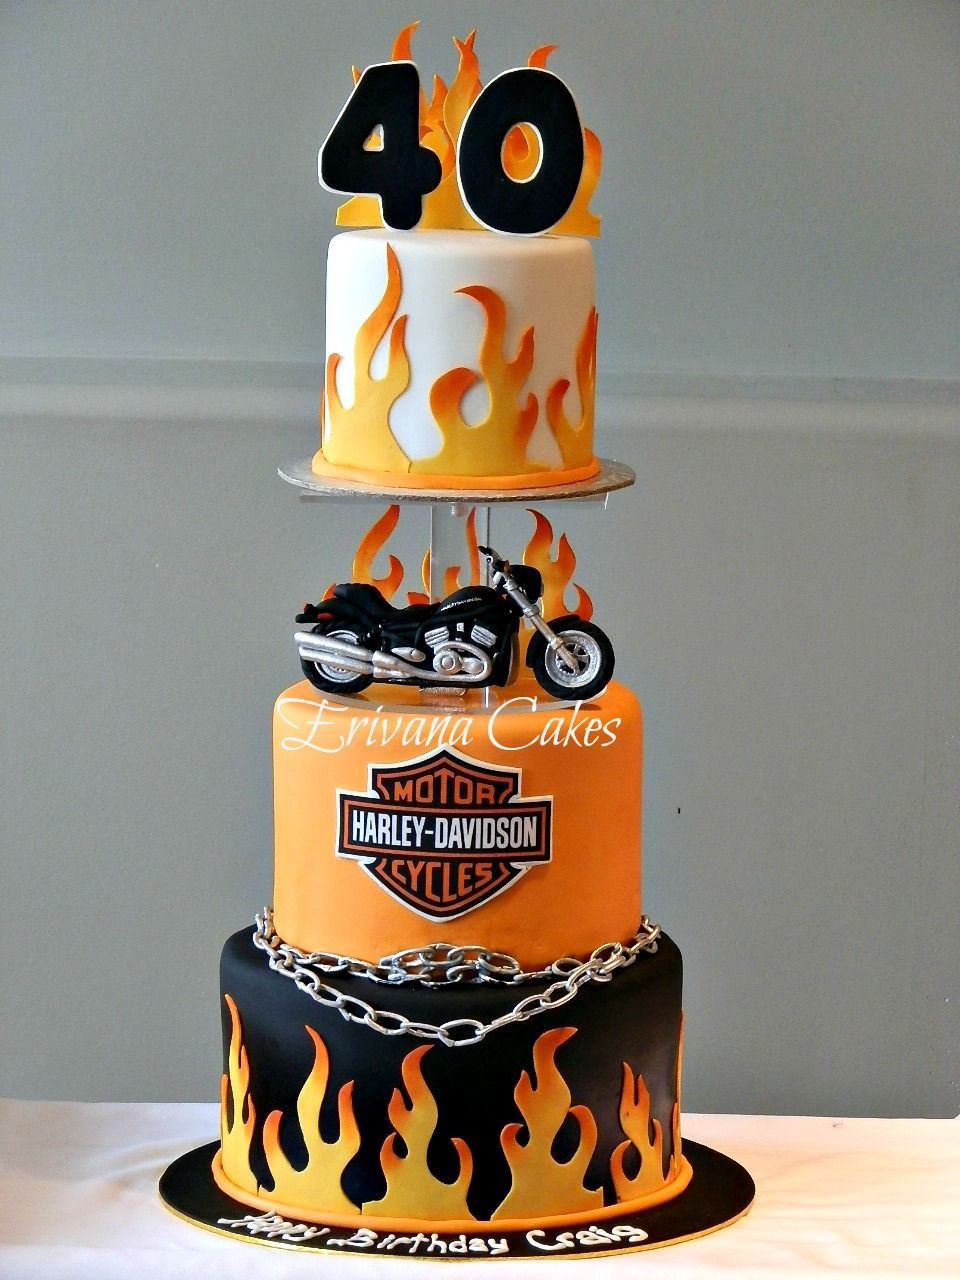 Harley Davidson Motorcycle Cake Inspired by Let them eat Cake